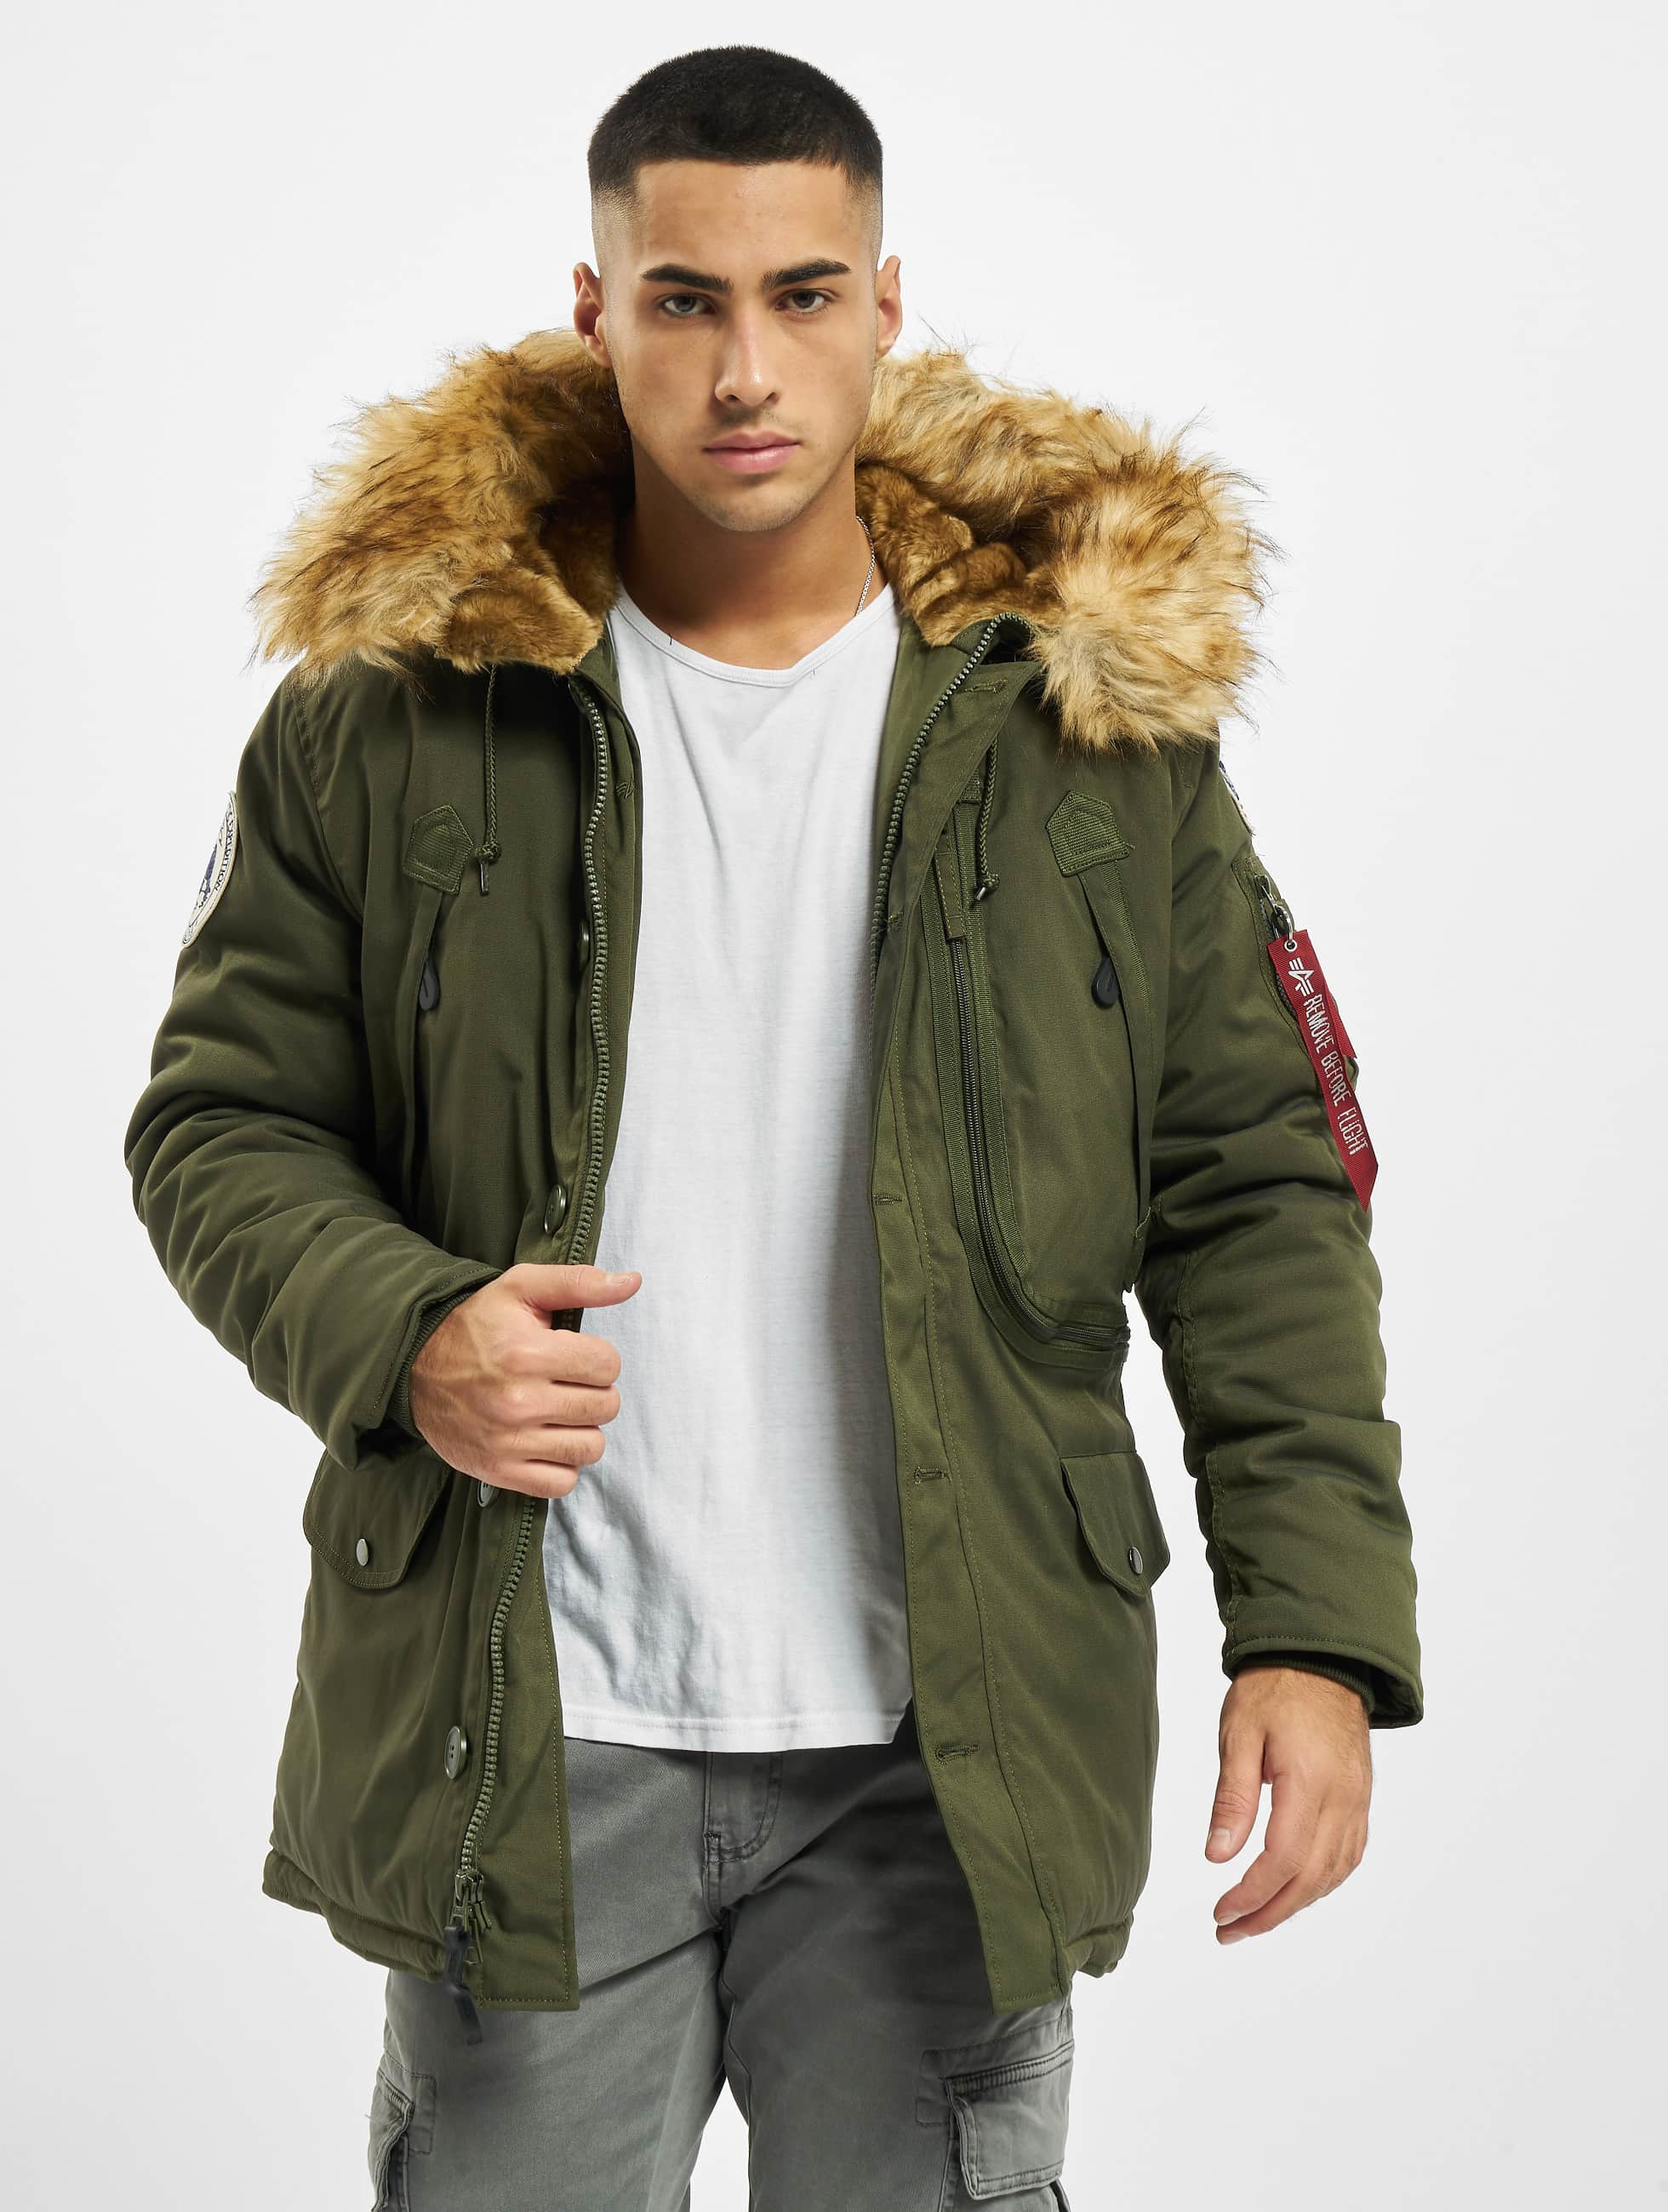 What Is A Parka Jacket